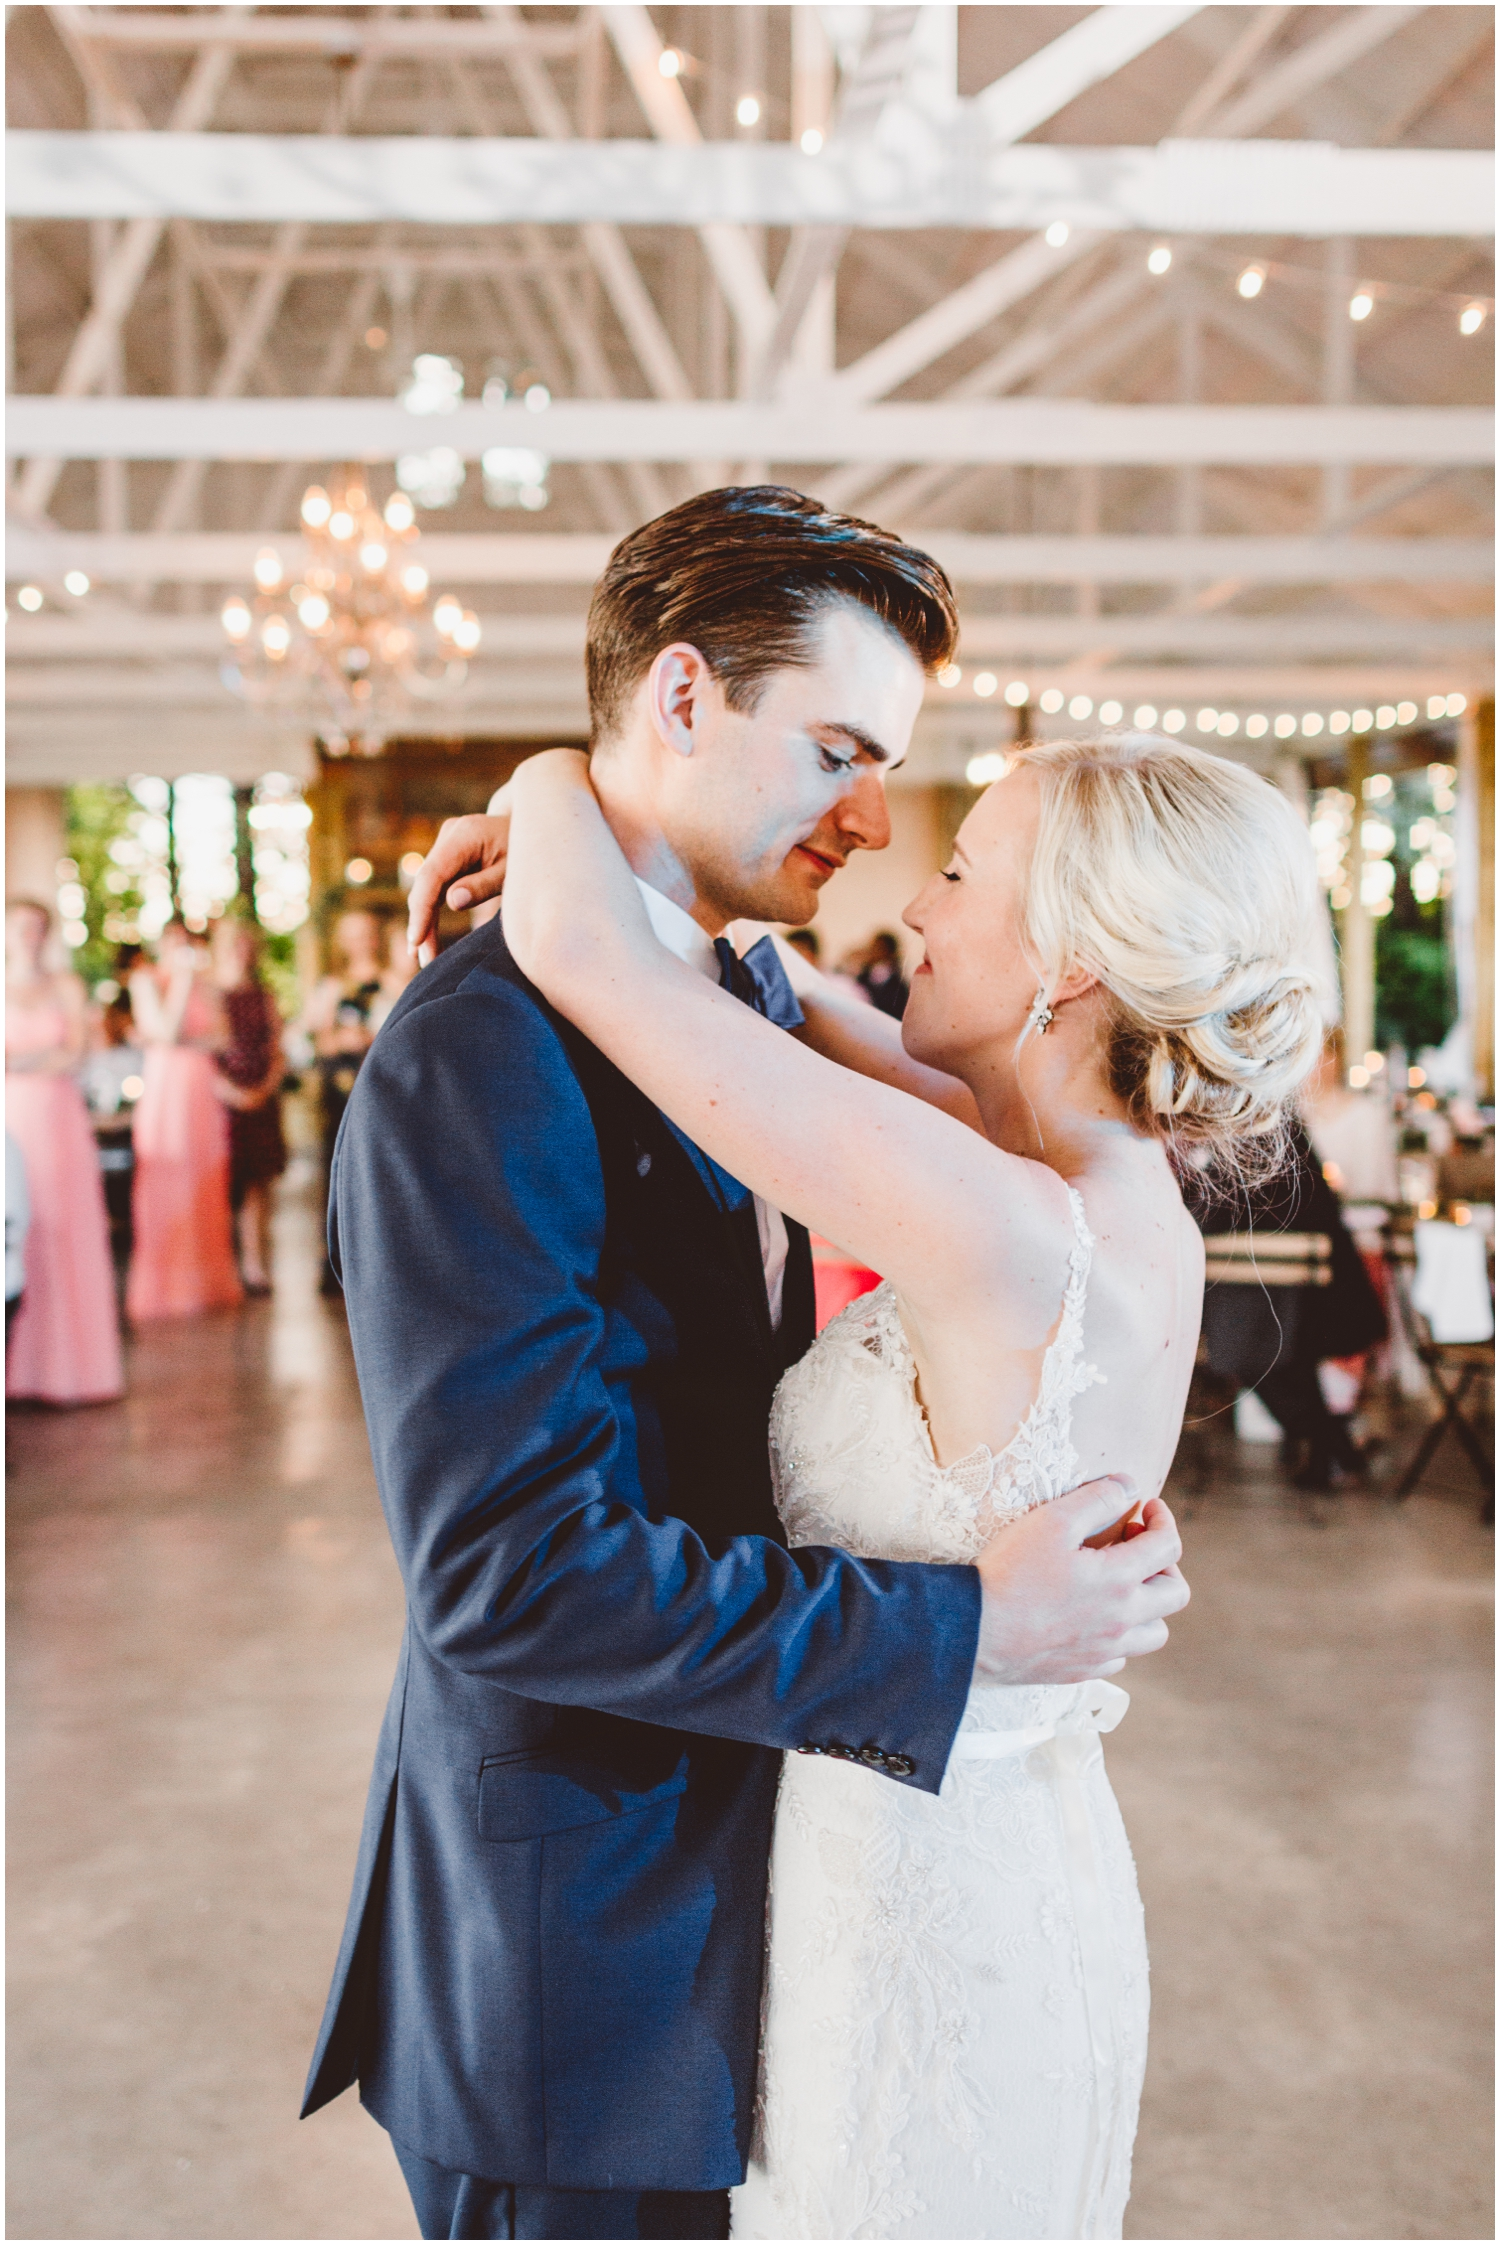 bride and groom's first dance at their MN wedding